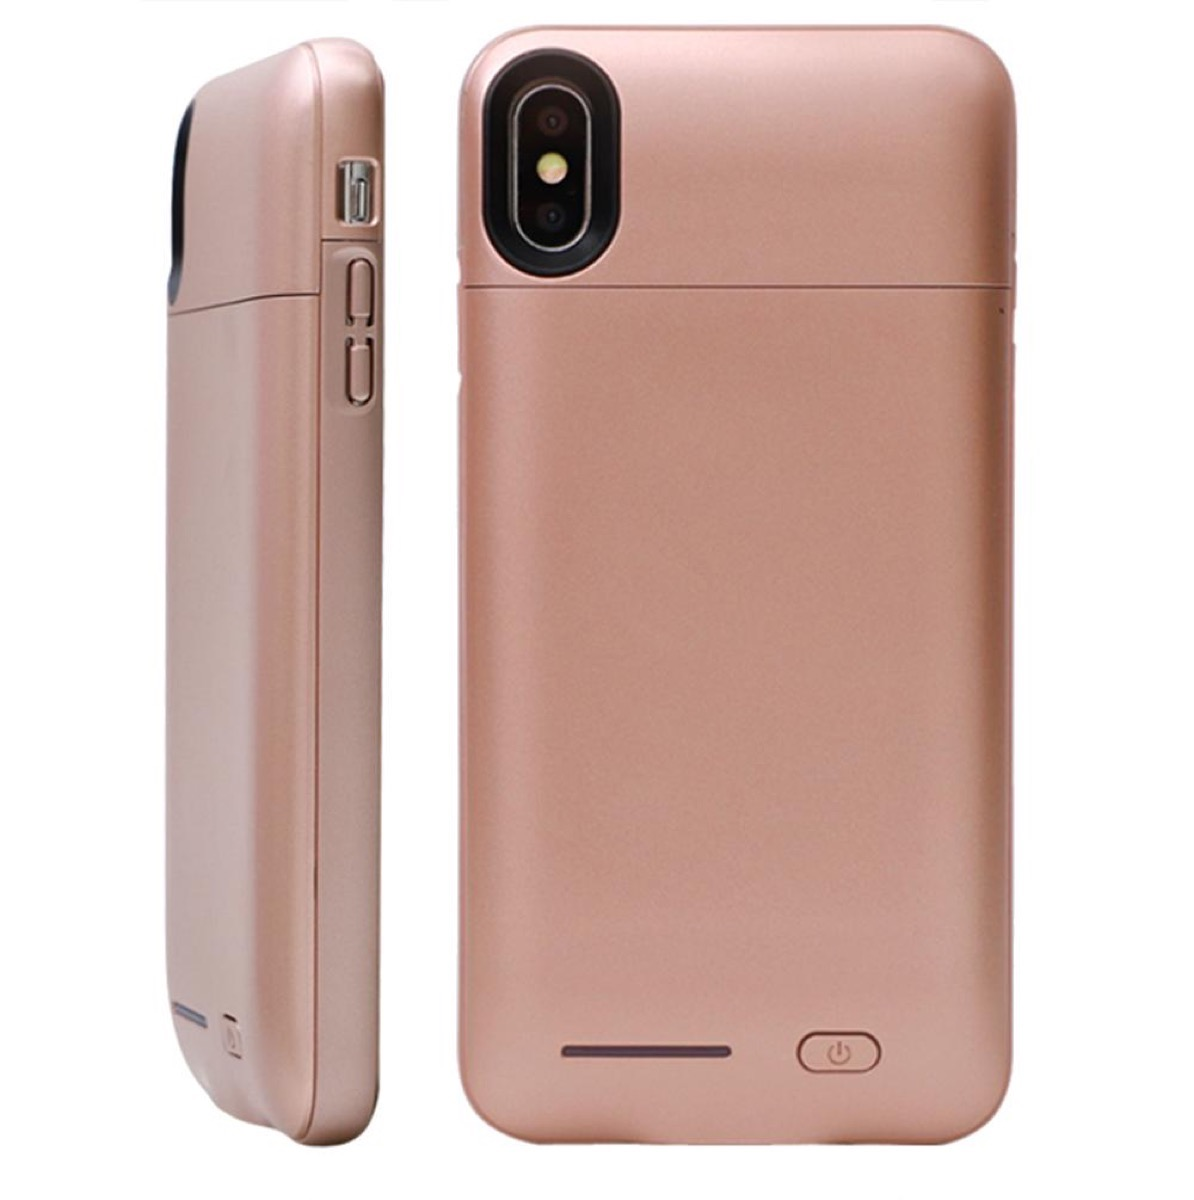 rose gold phone charging case